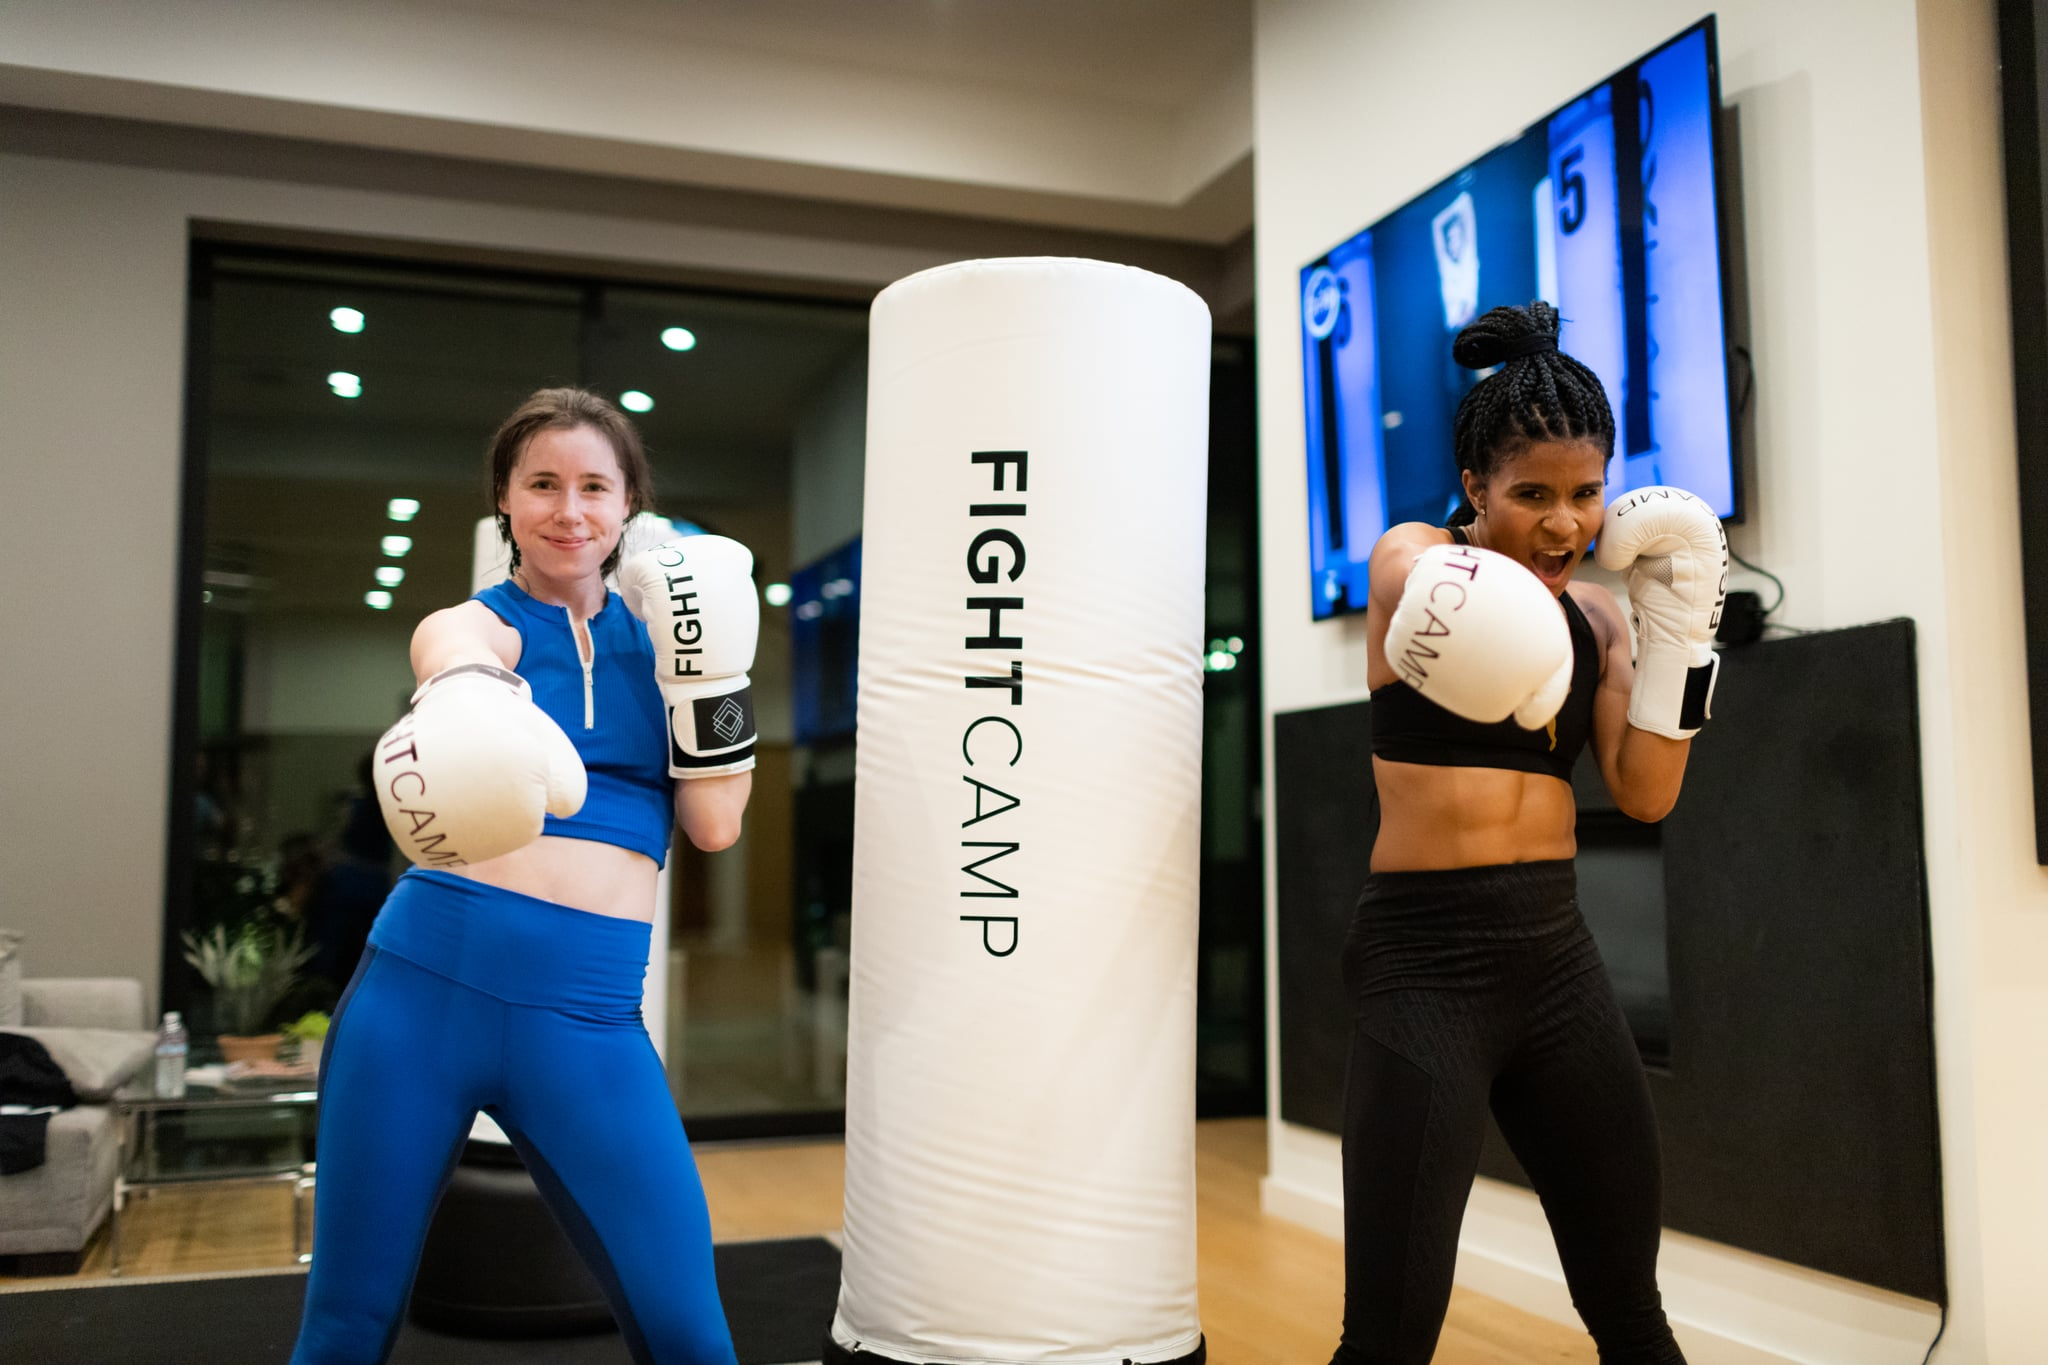 What is fightcamp at home boxing workout popsugar fitness australia